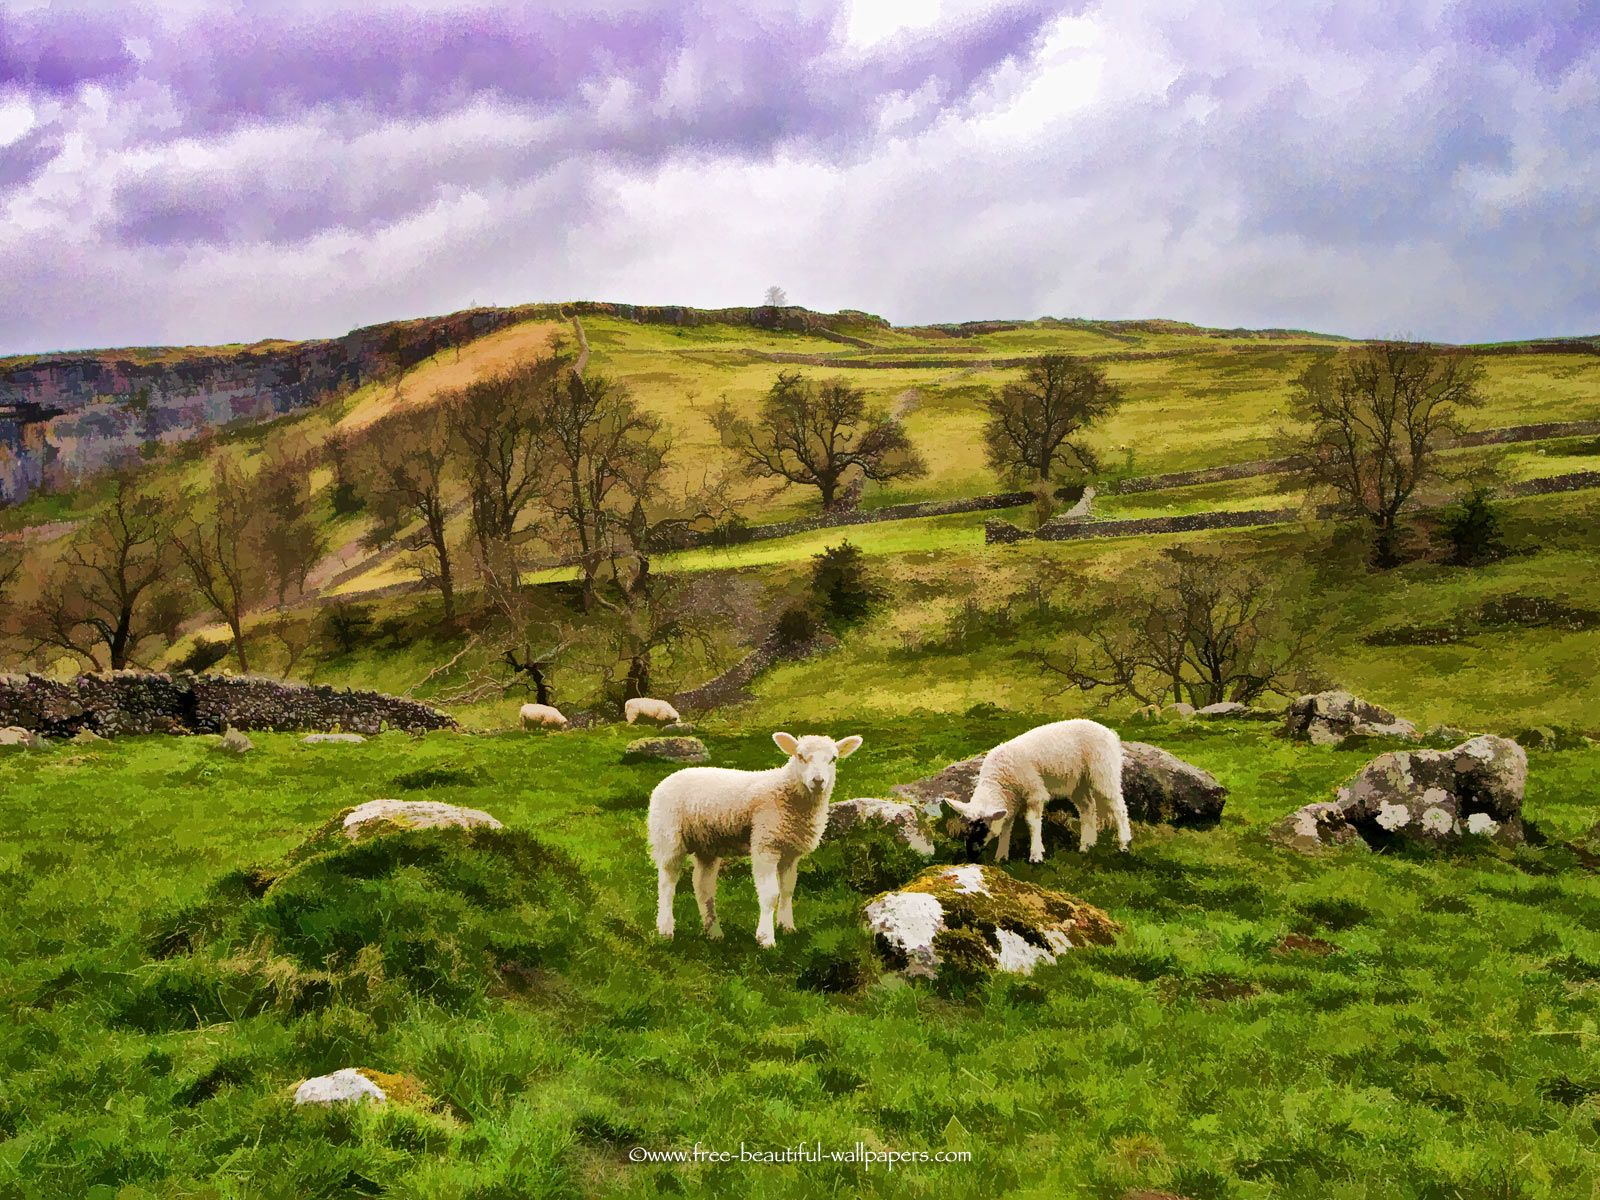 Yorkshire Dales | Yorkshire Dales Sheep Beautiful Landscape HD Wallpaper